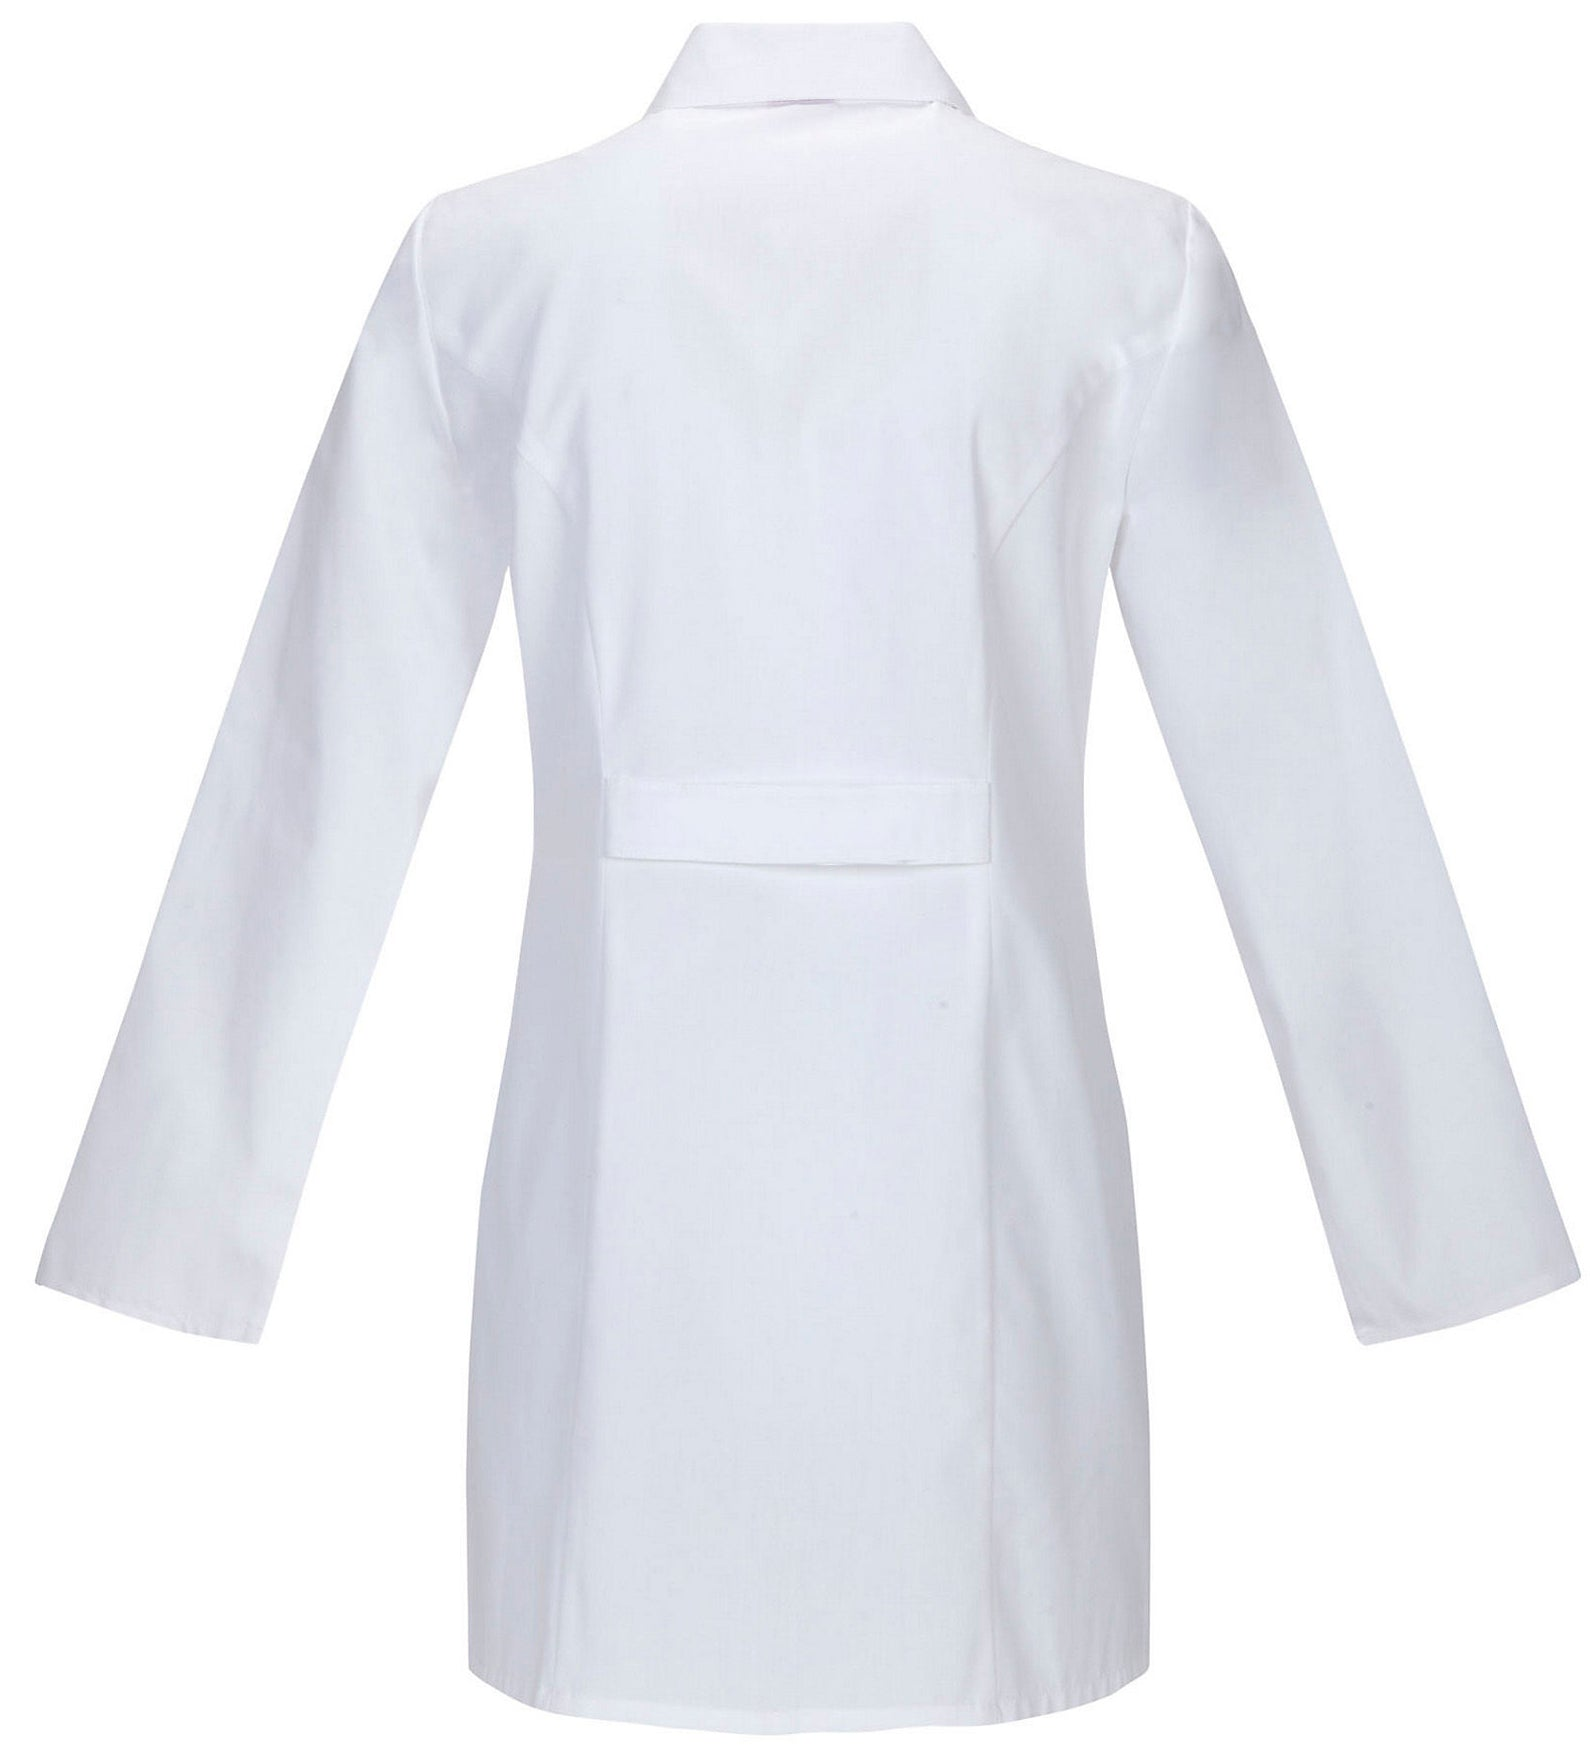 Chemical Science Lab Coat